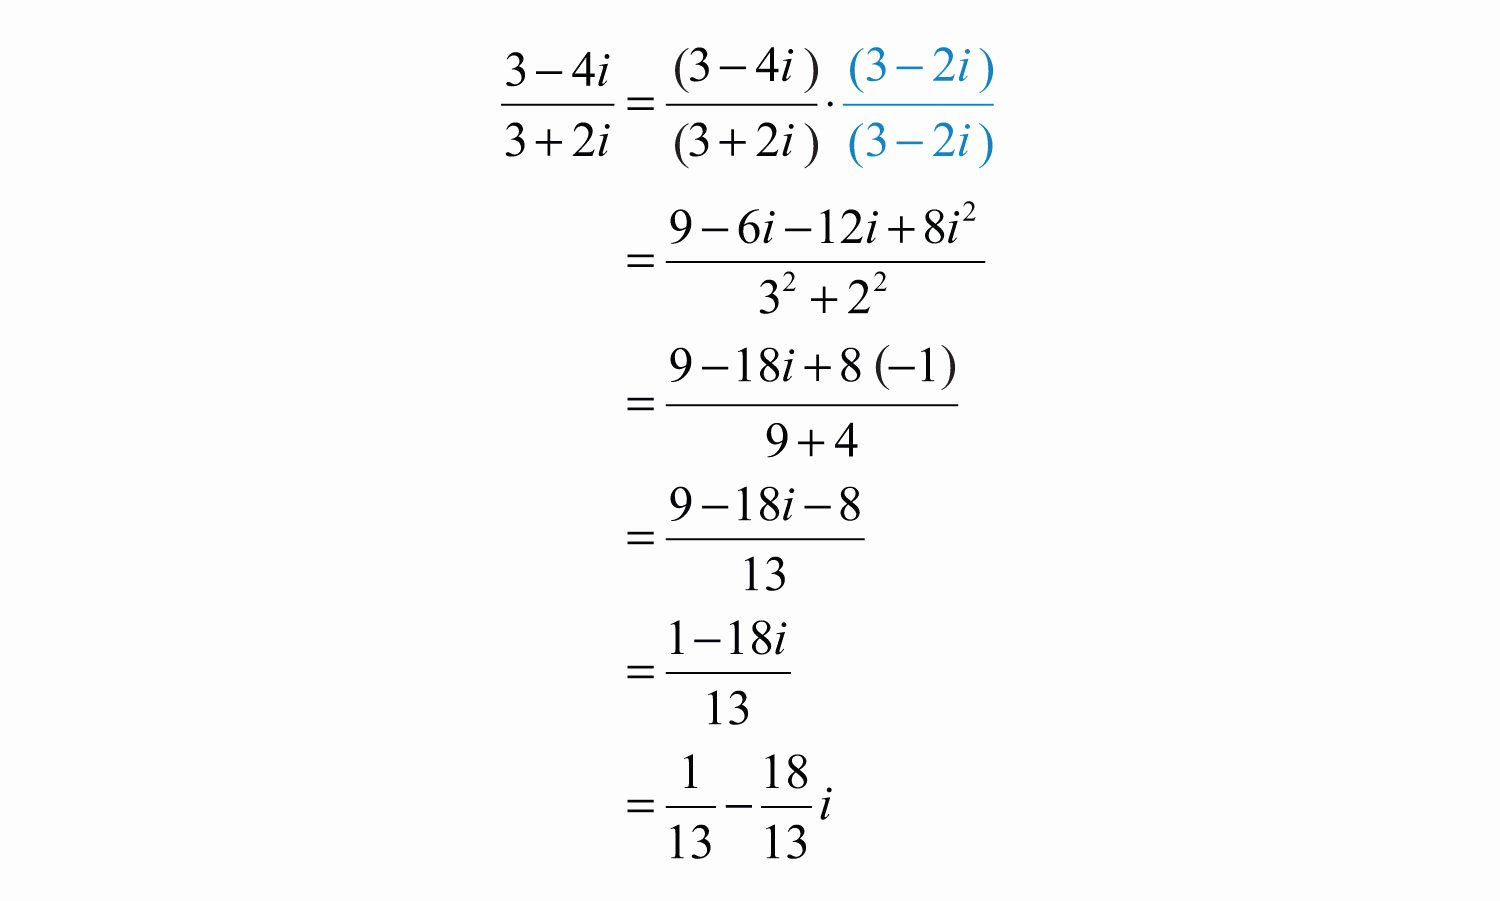 Complex Numbers Worksheet Answers Best Of Imaginary Numbers Worksheet A2 N 6 Answers